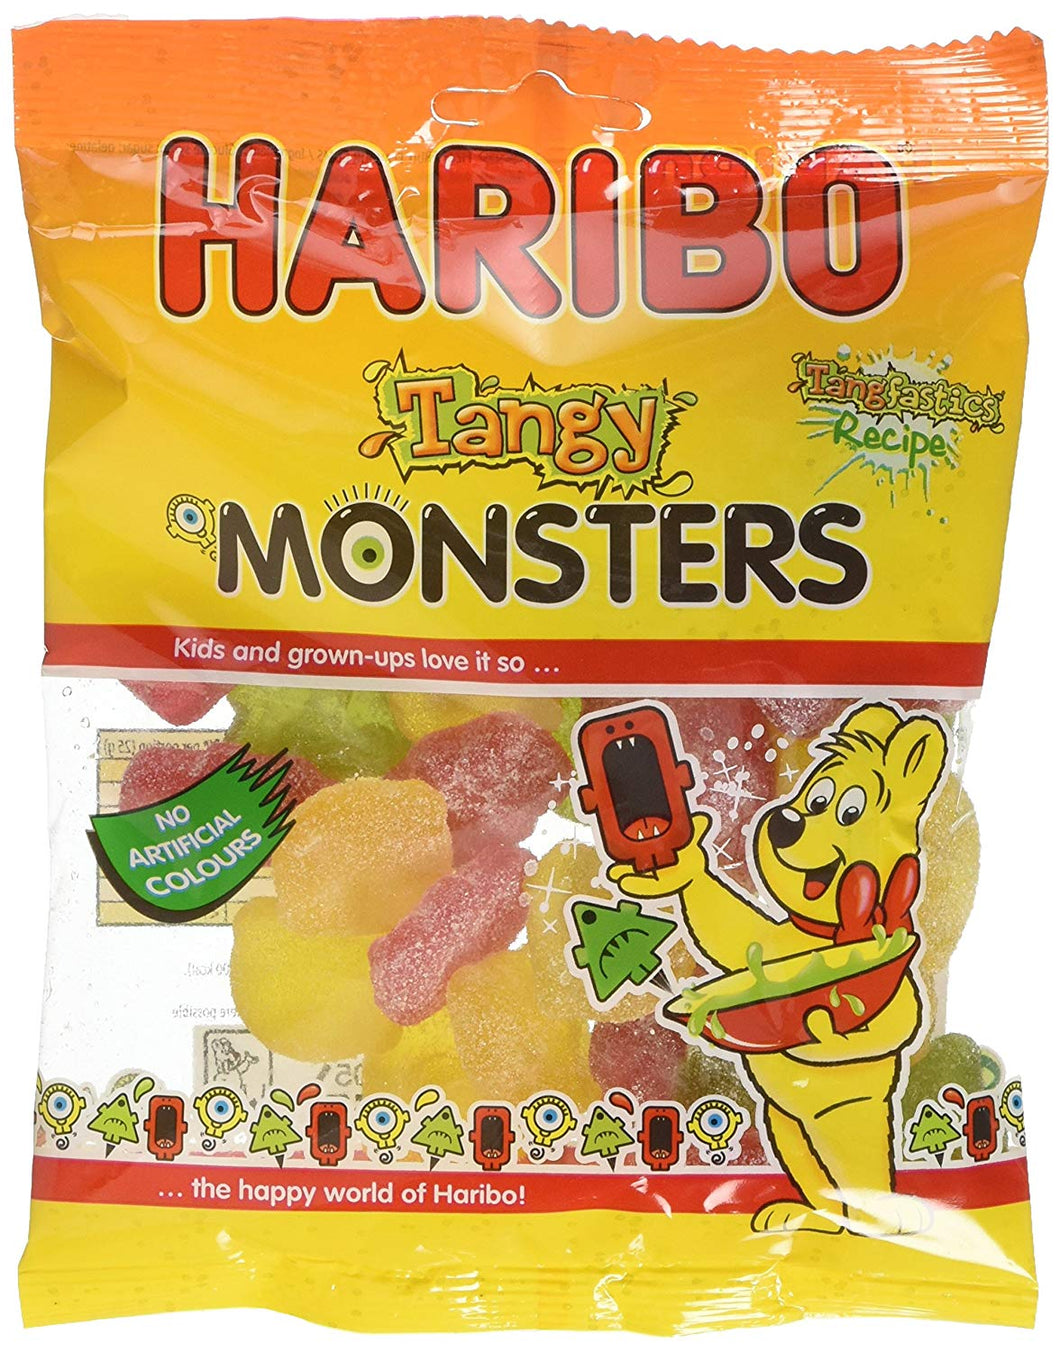 Haribo Tangy Monsters - Special